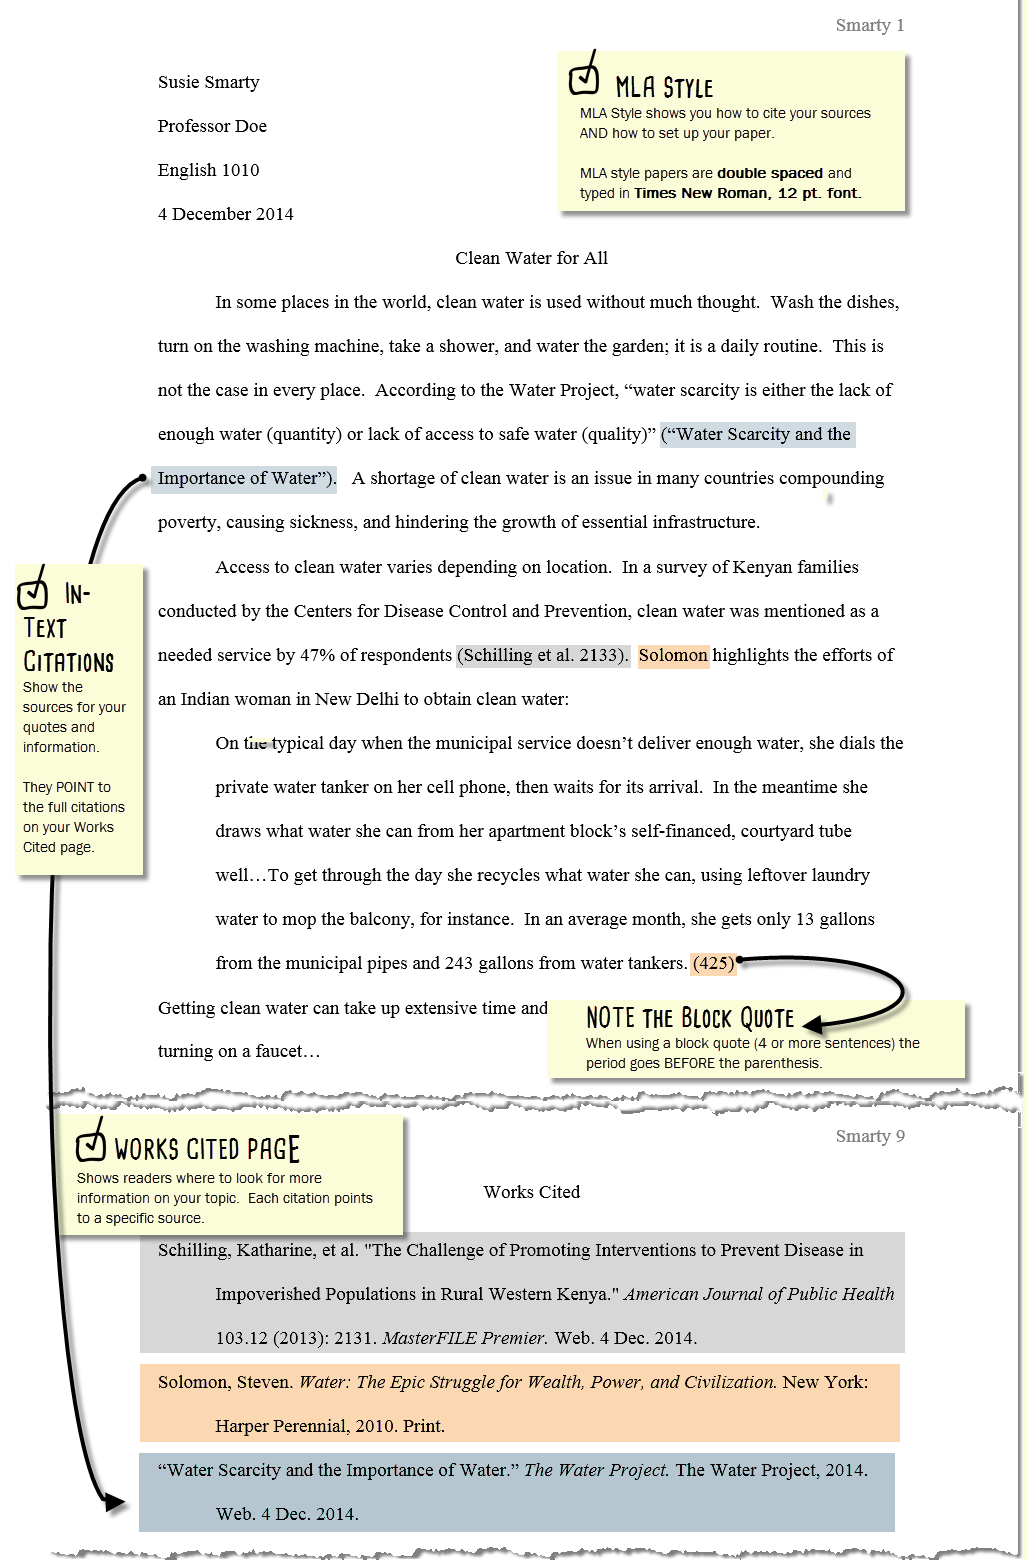 mla style citation for essays Mla citation for essays the mla style is a new paragraph by typing the mla template format examples are enough to a successful citation on purdue's campus.